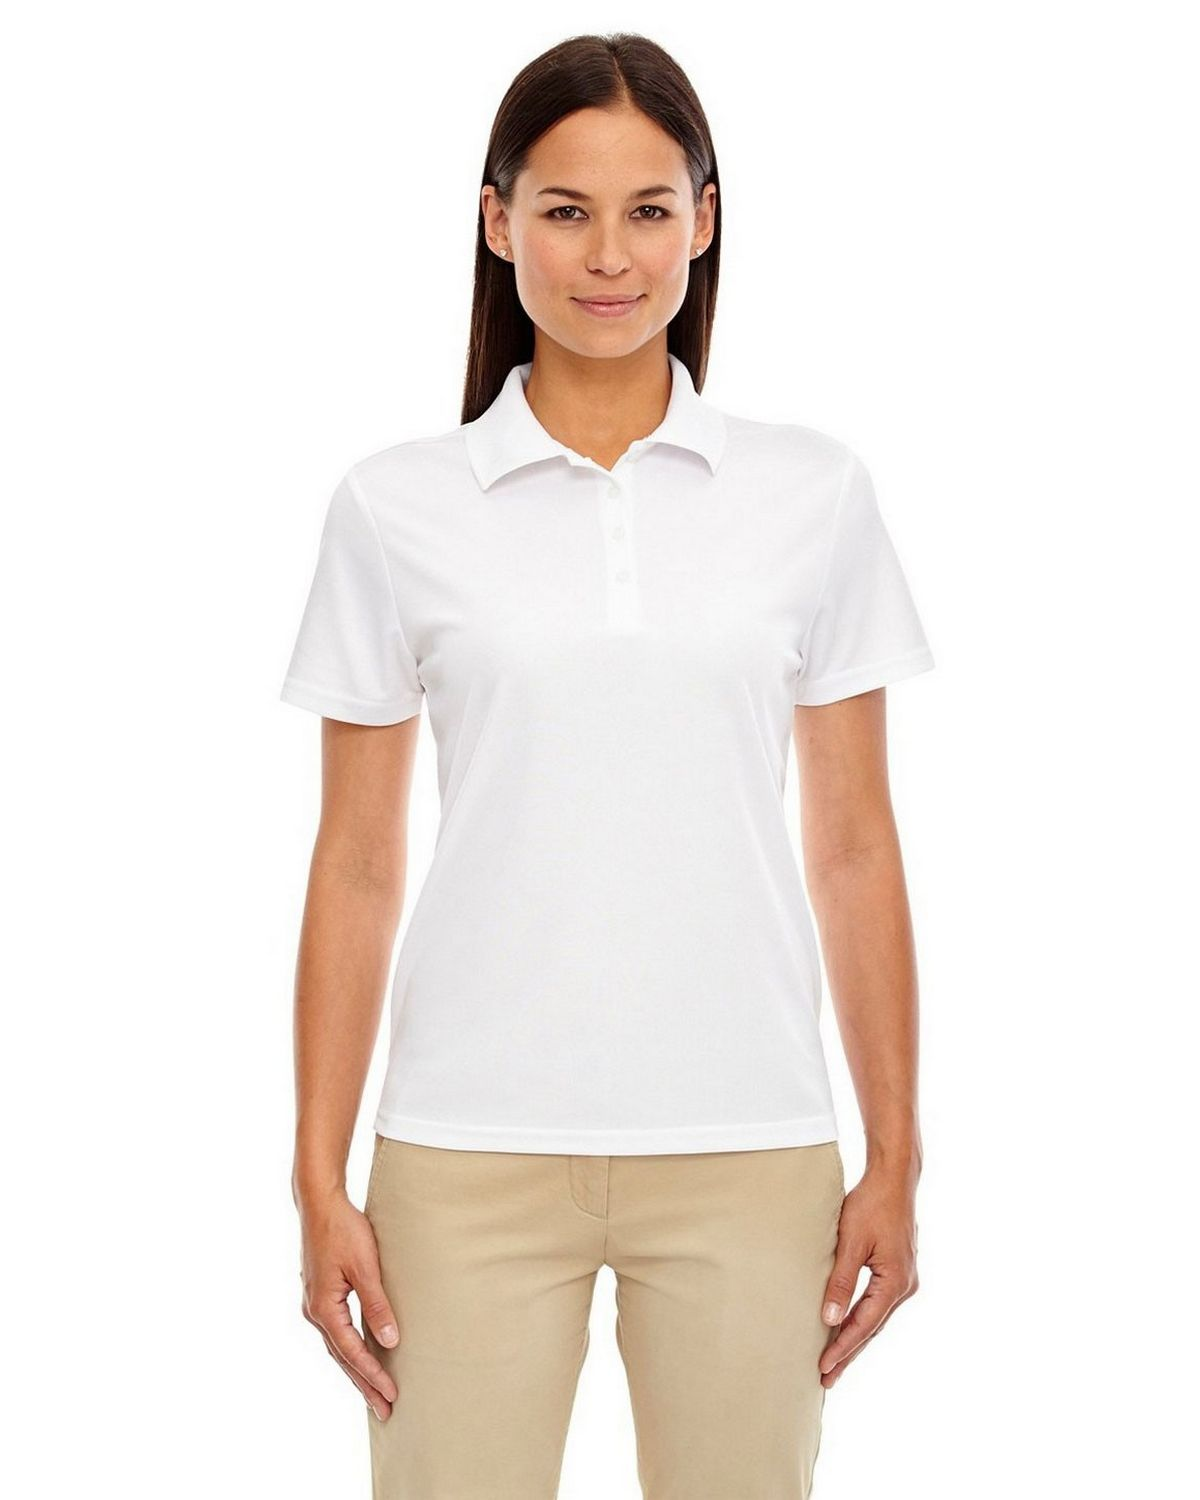 Buy Core365 78181 Origin Ladies Performance Pique Polo